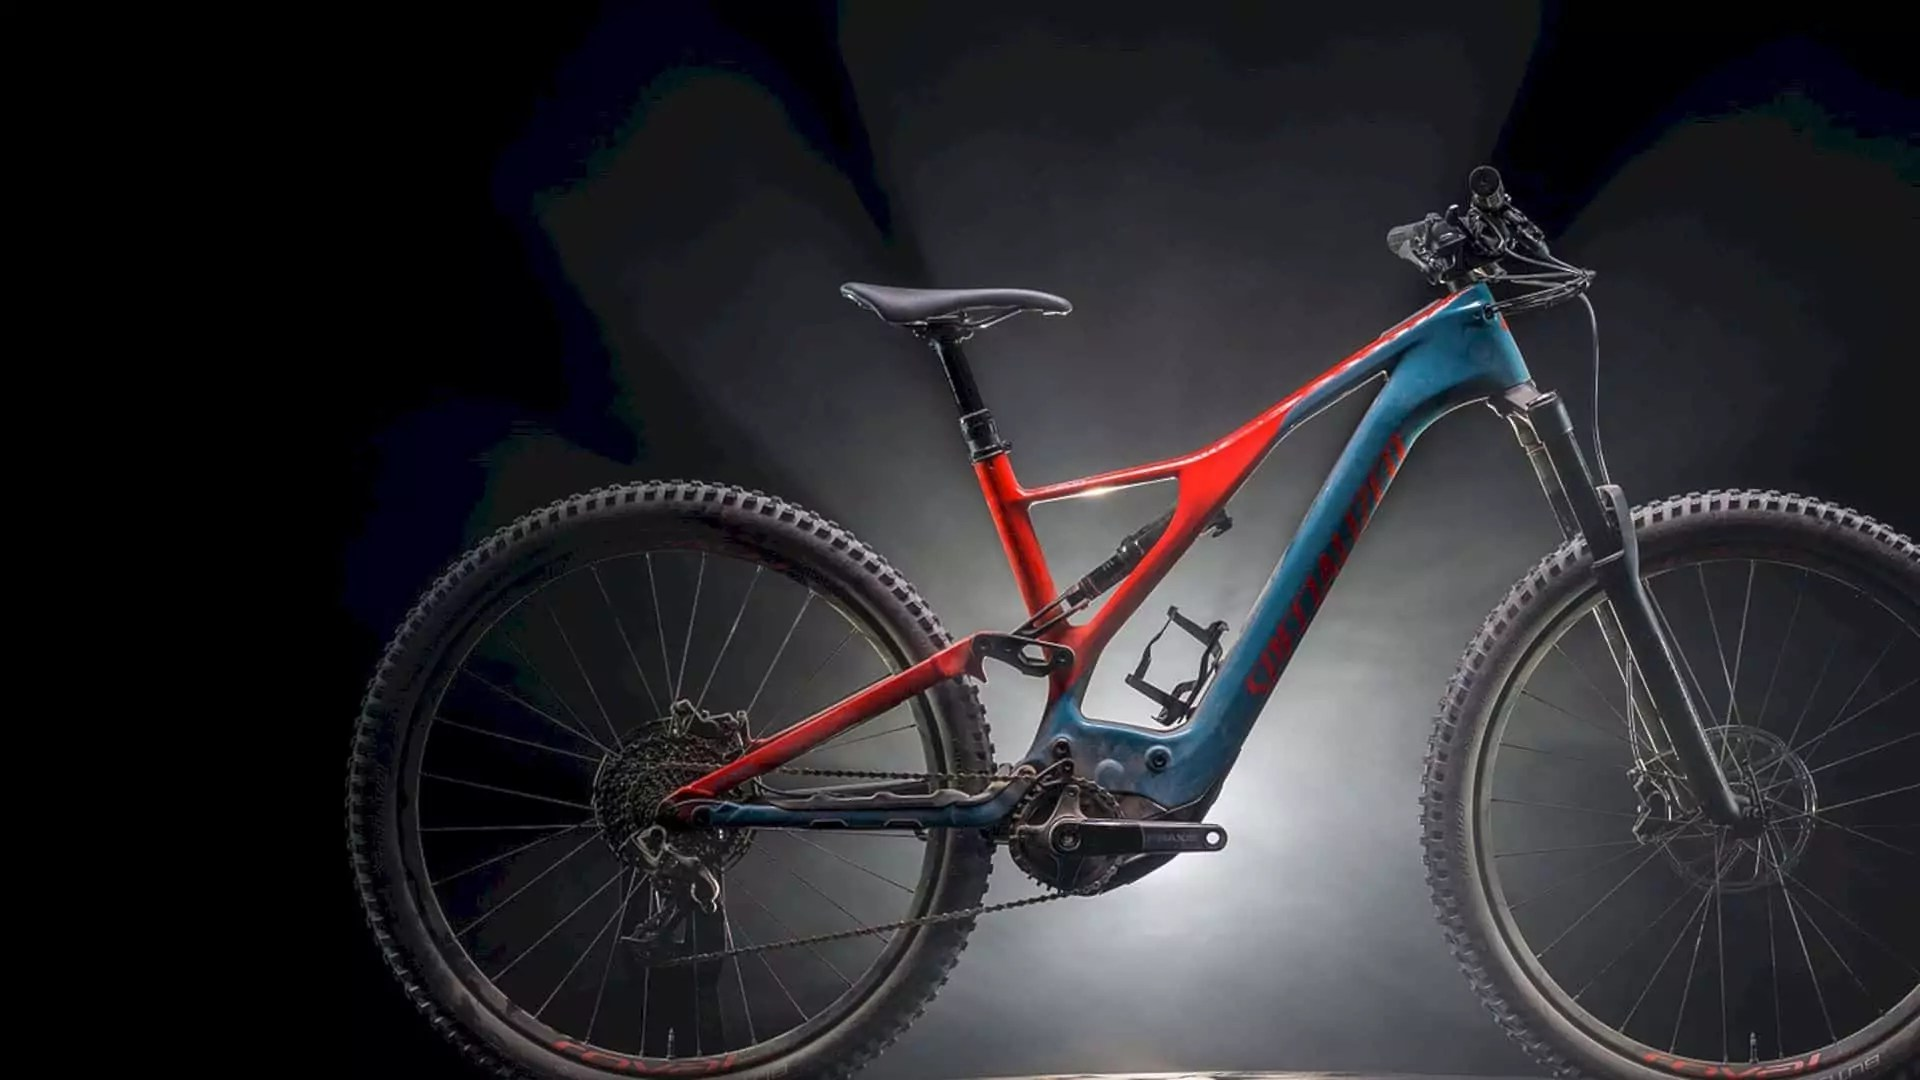 The All-New Turbo Levo: The Best Got Even Better